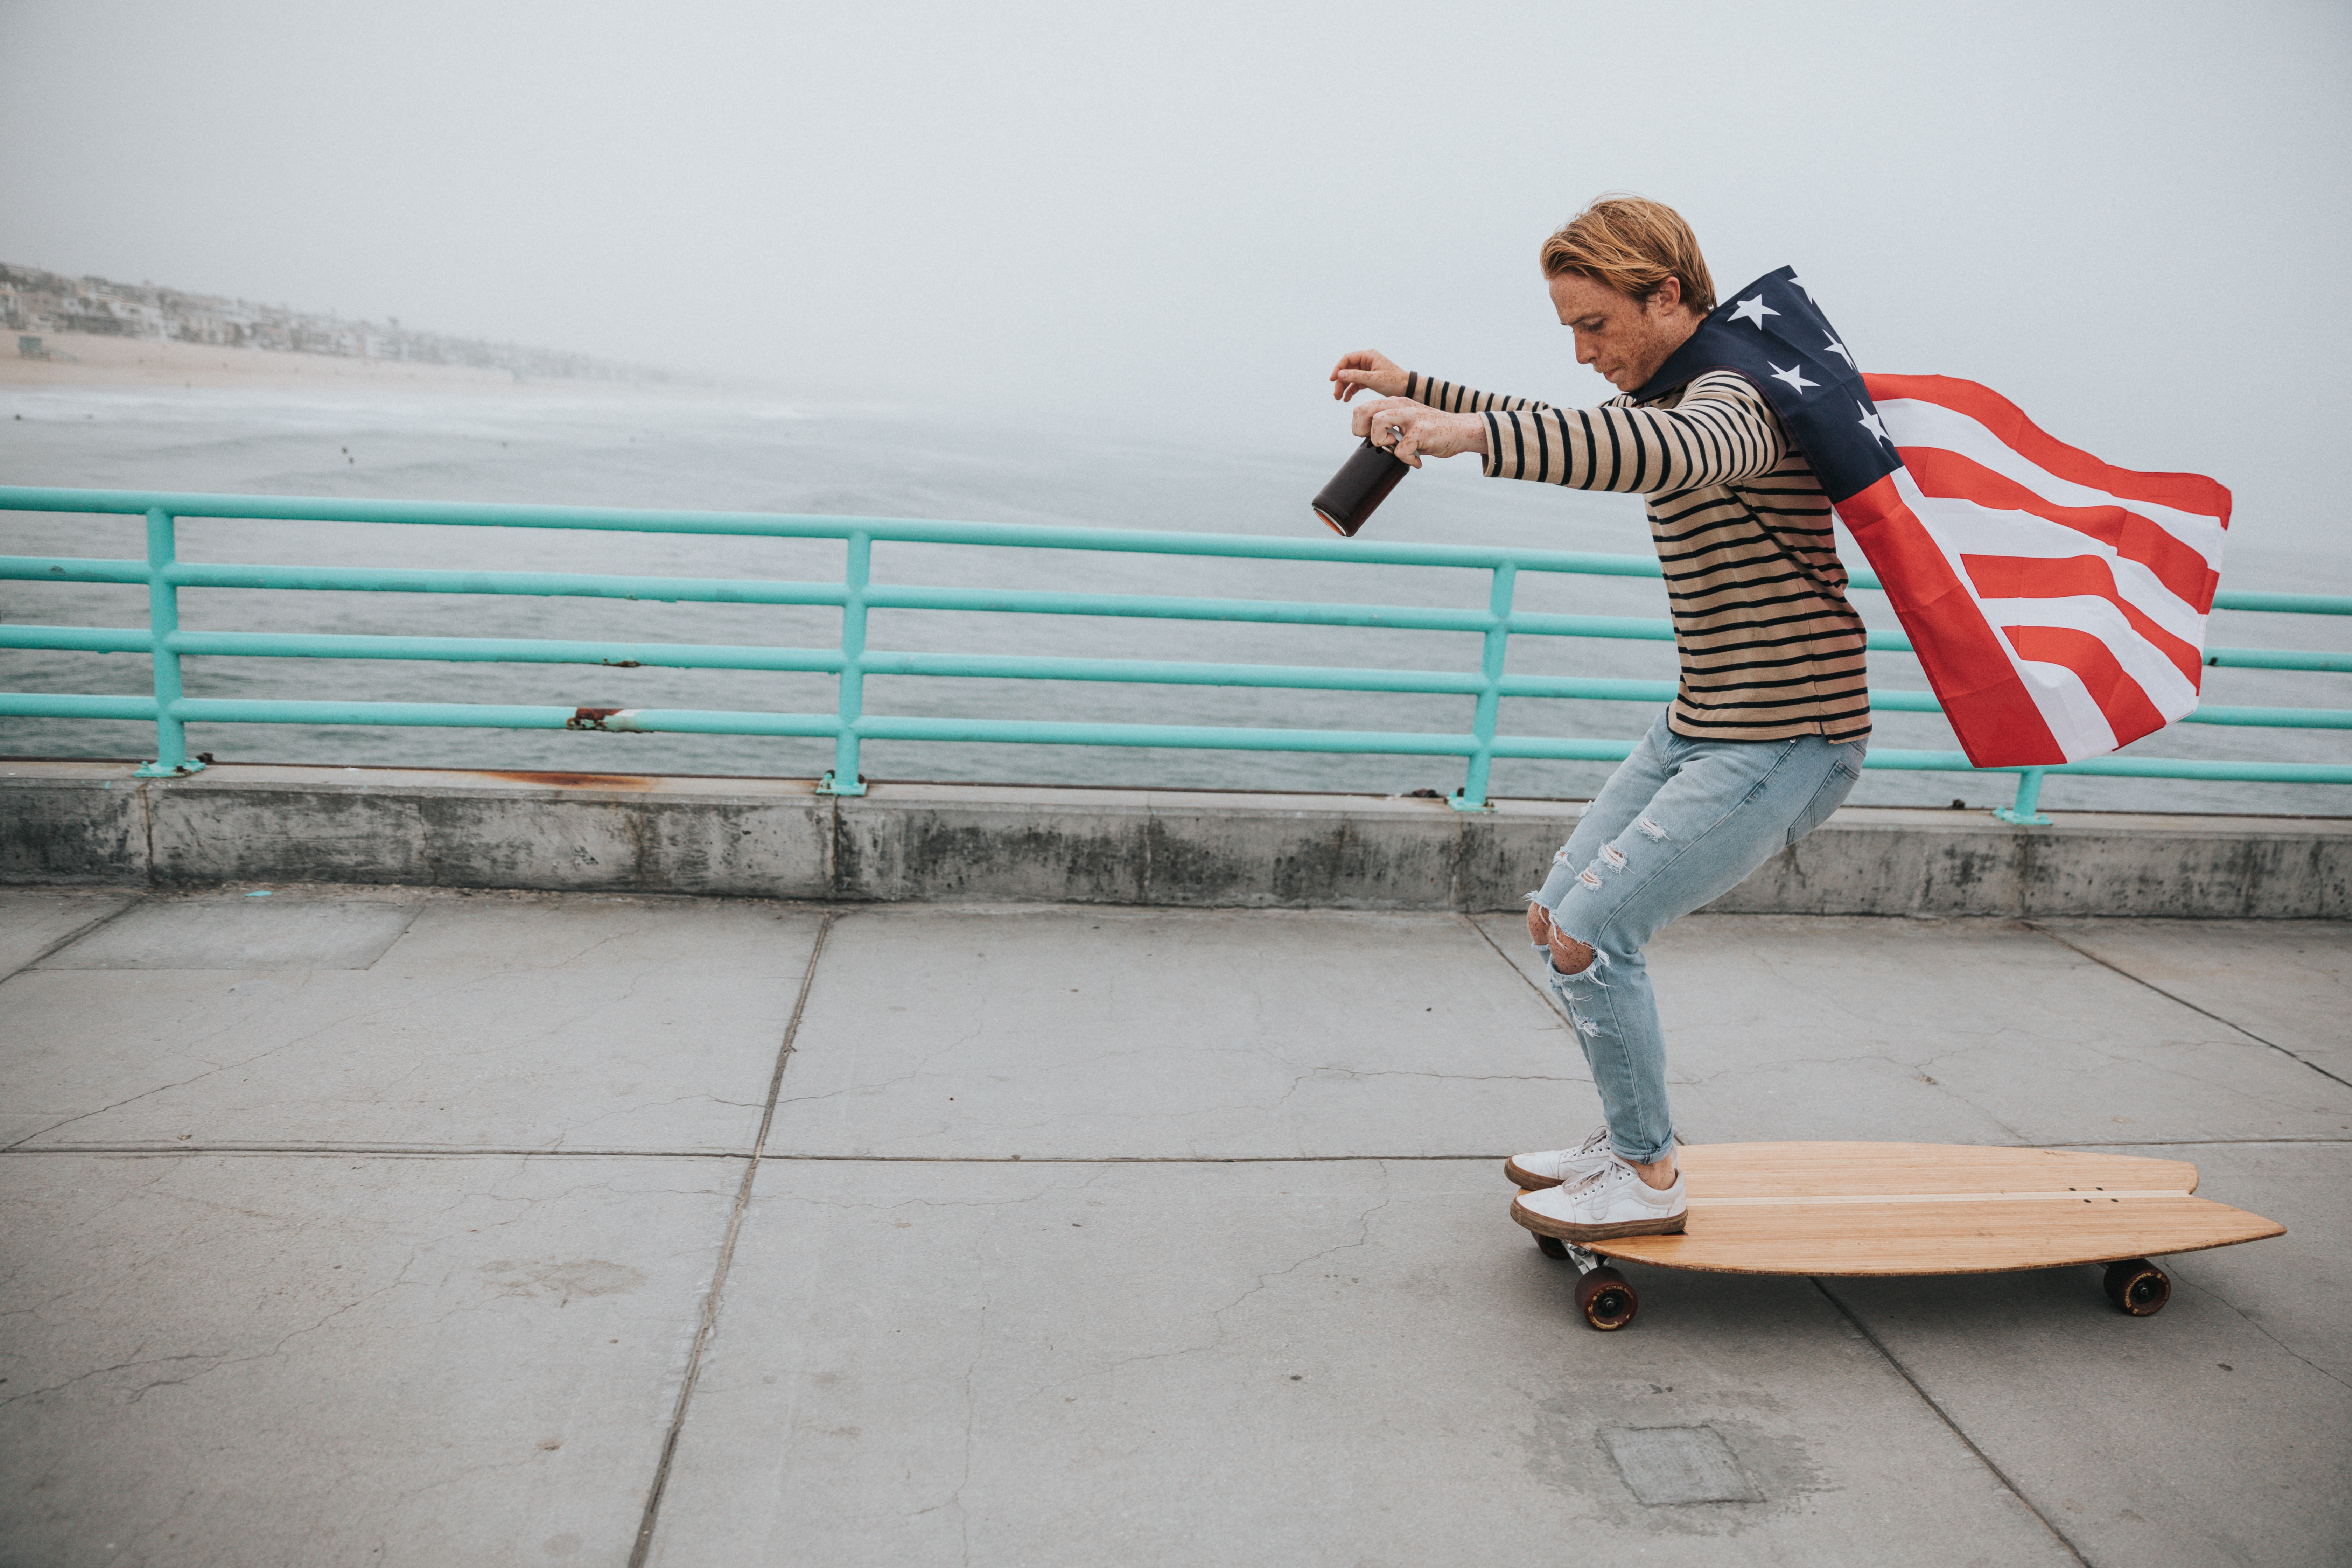 man wearing US flag cape while riding on longboard near body of water during daytime